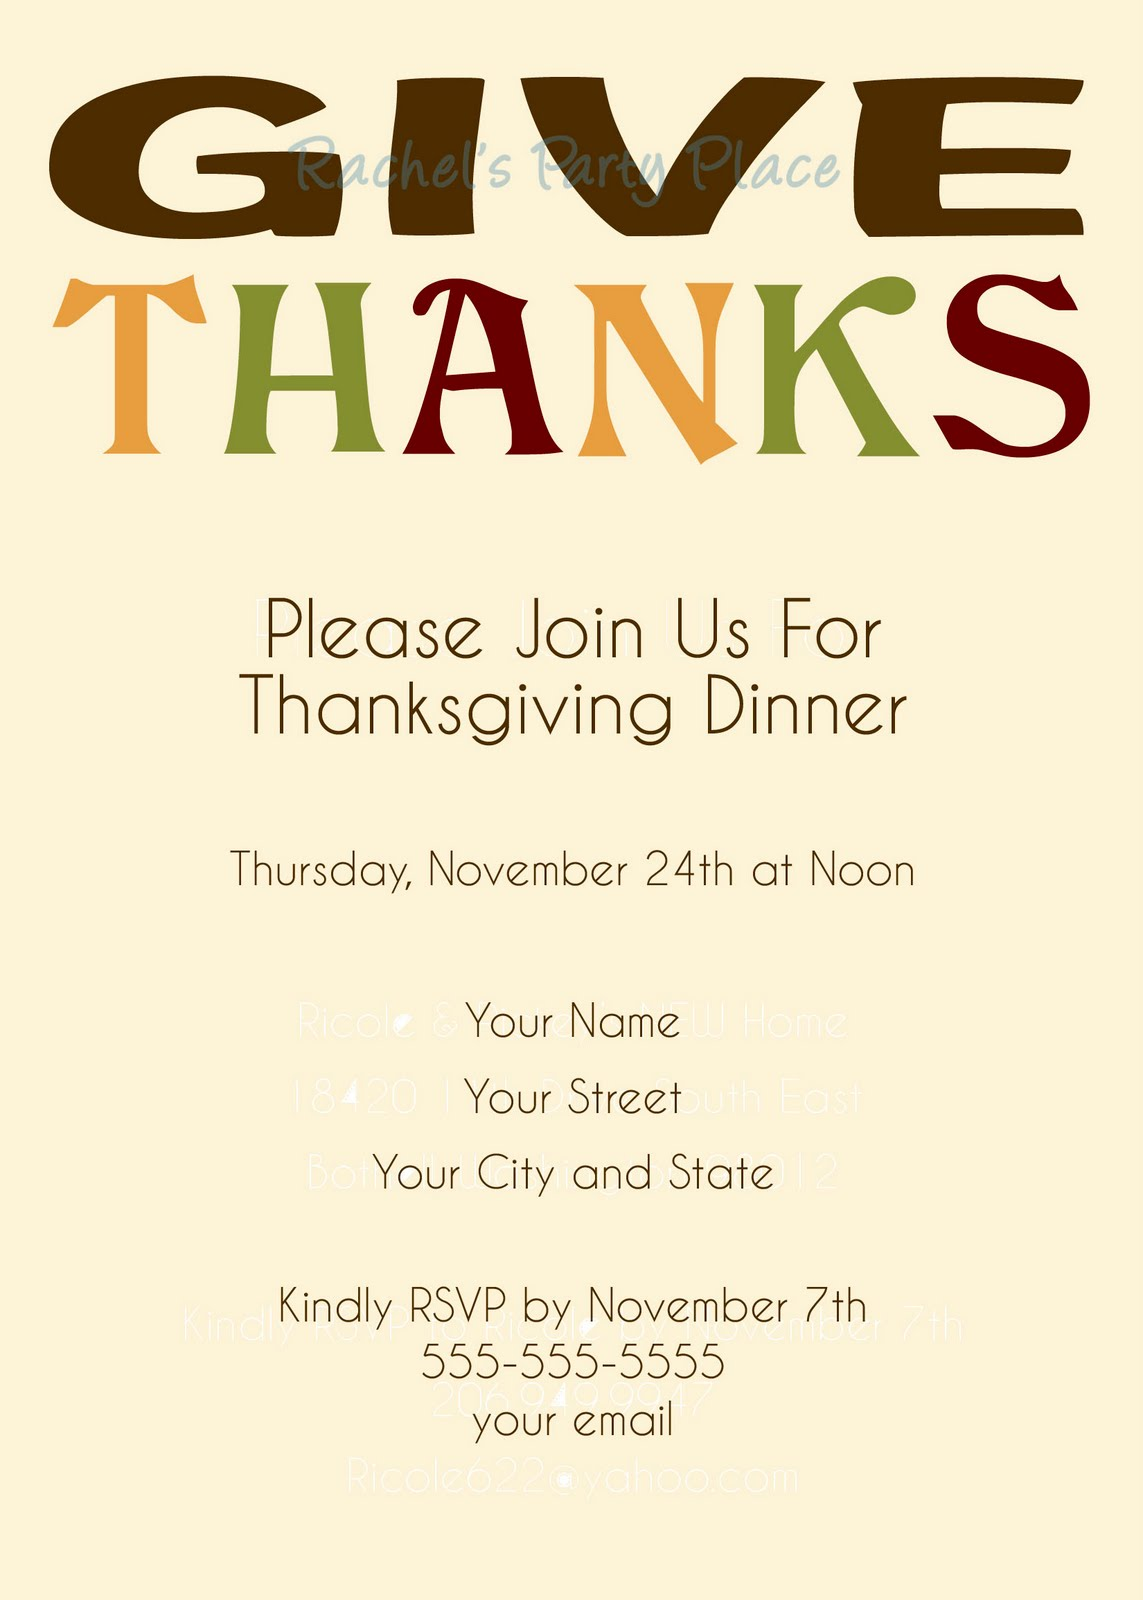 Rachels Party Place Thanksgiving Dinner Invitations - Thanksgiving party invitation templates